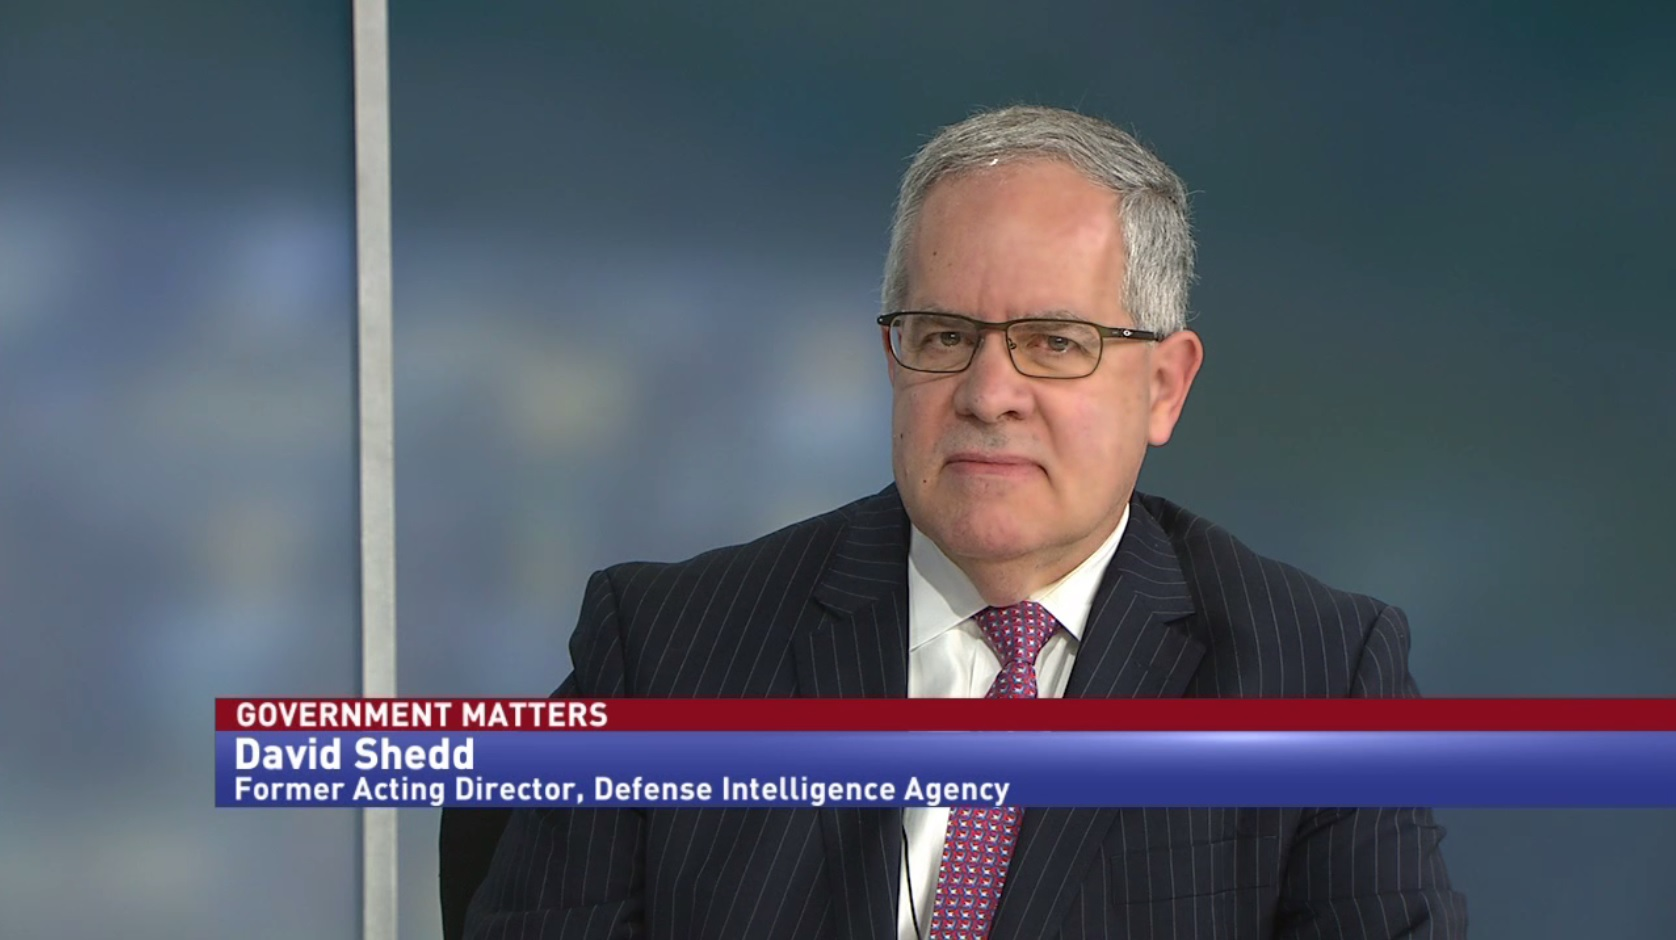 Solutions to the government security clearance backlog